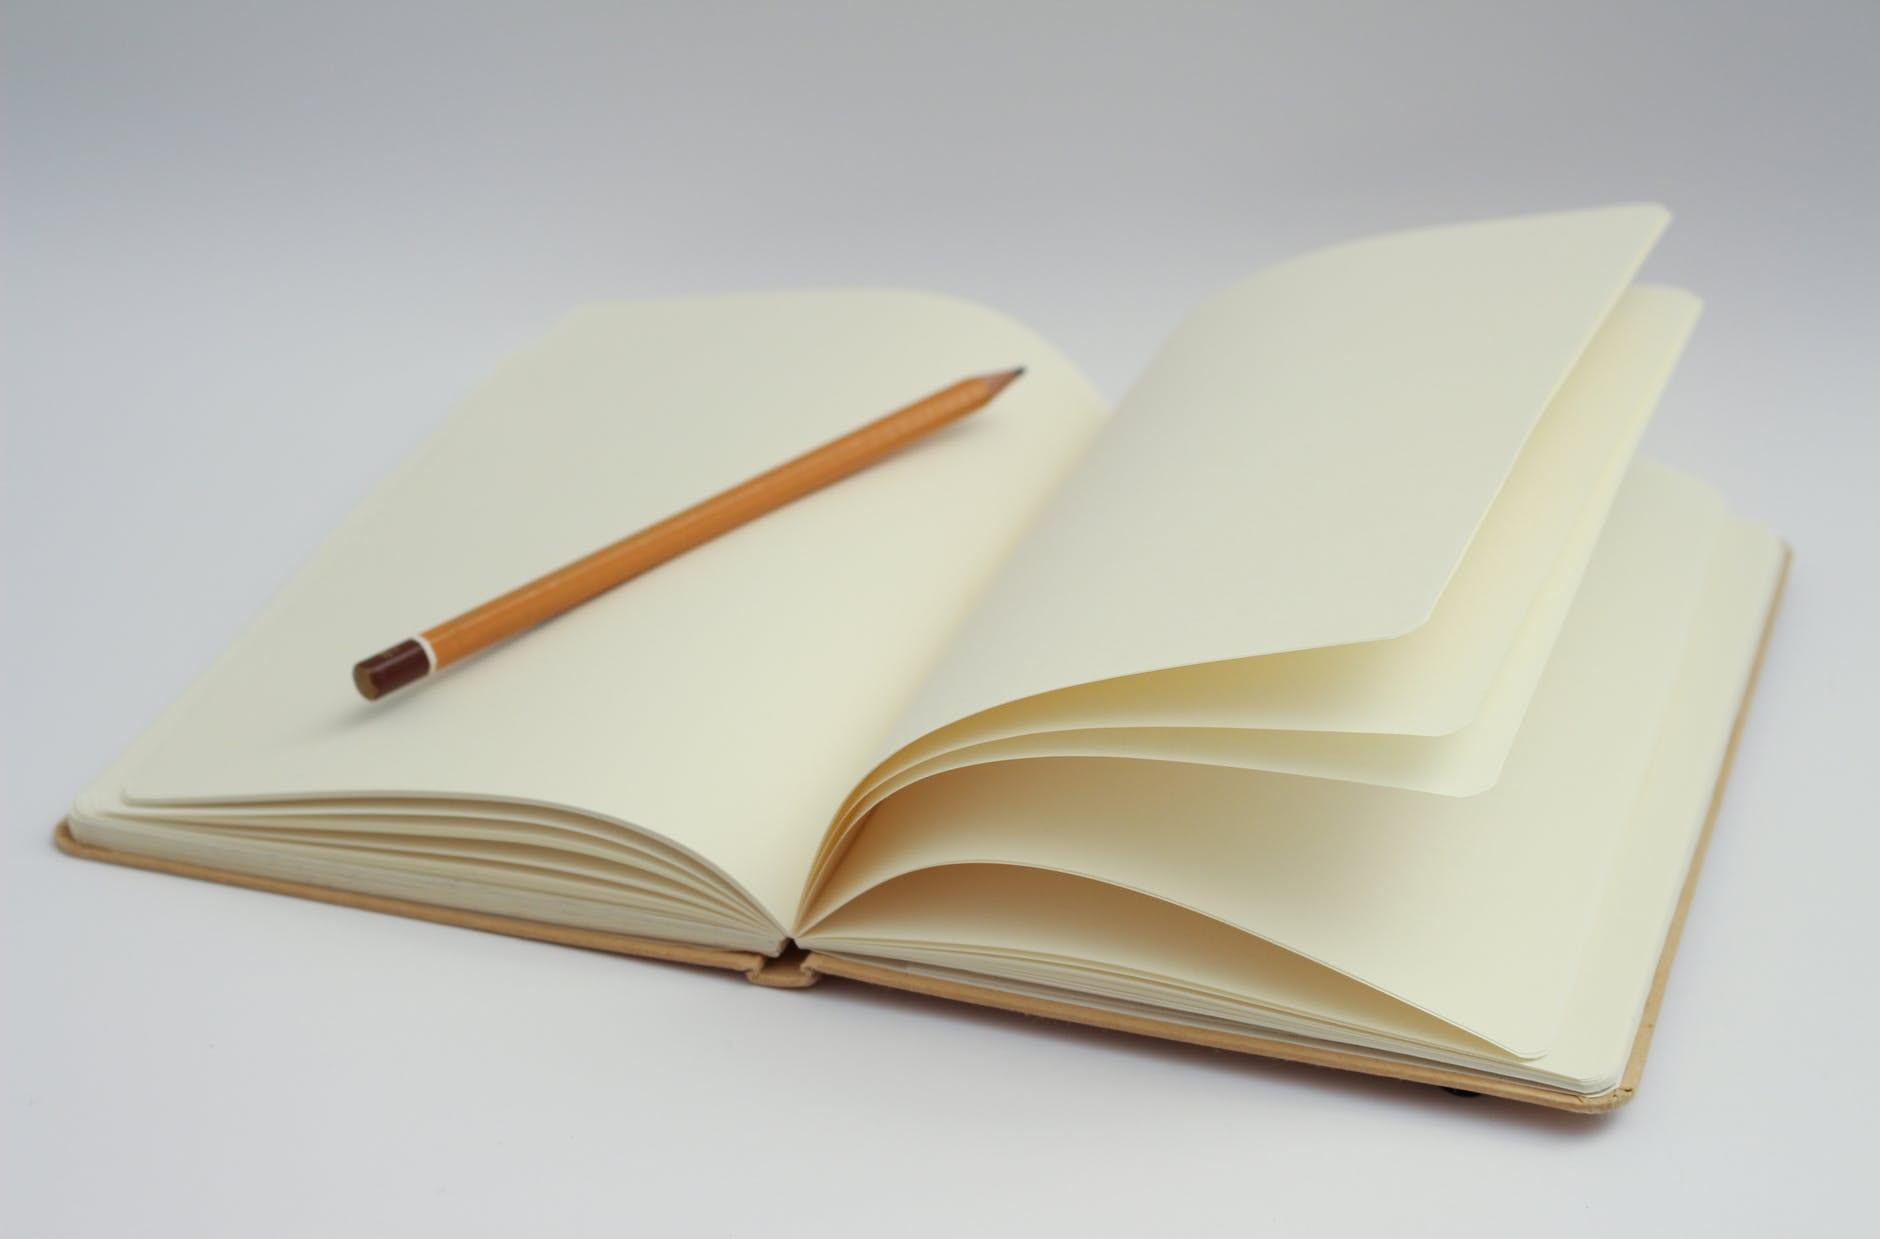 A pencil laying flat on a journal